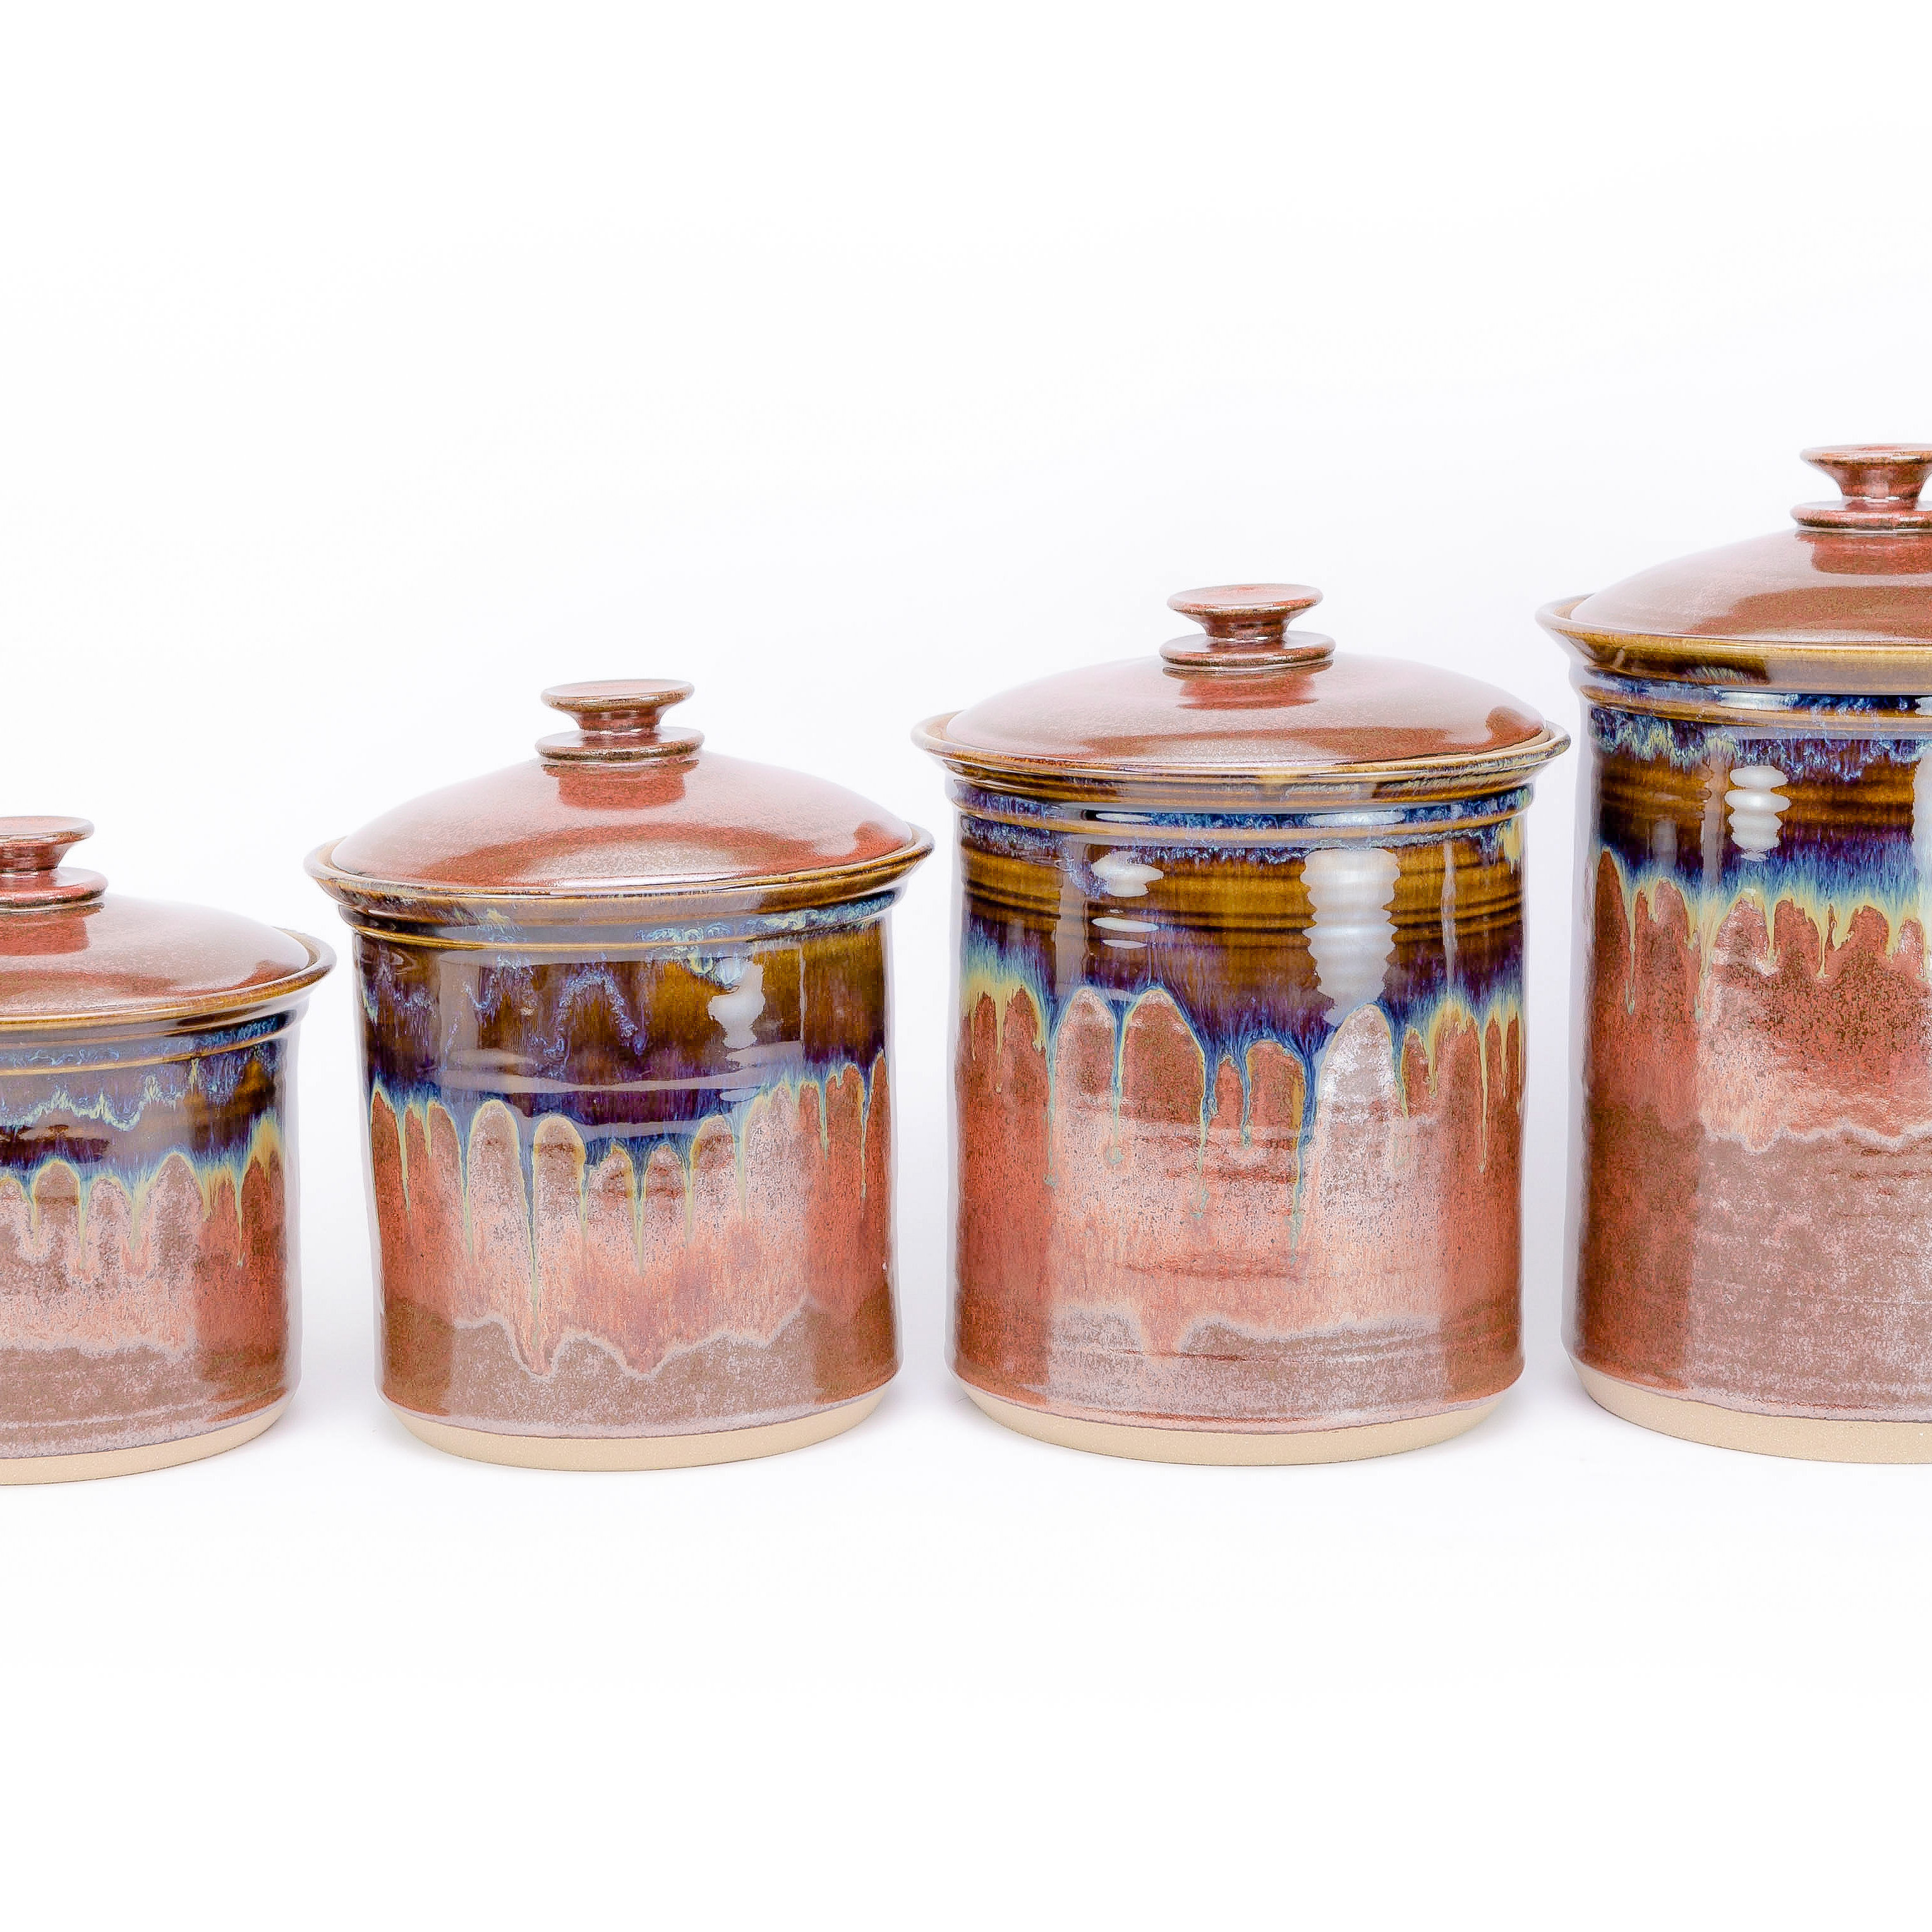 little e pottery canister sets my wheel thrown pottery canisters are designed to be highly functional for frequent use while also adding a beautiful artisan touch to your kitchen